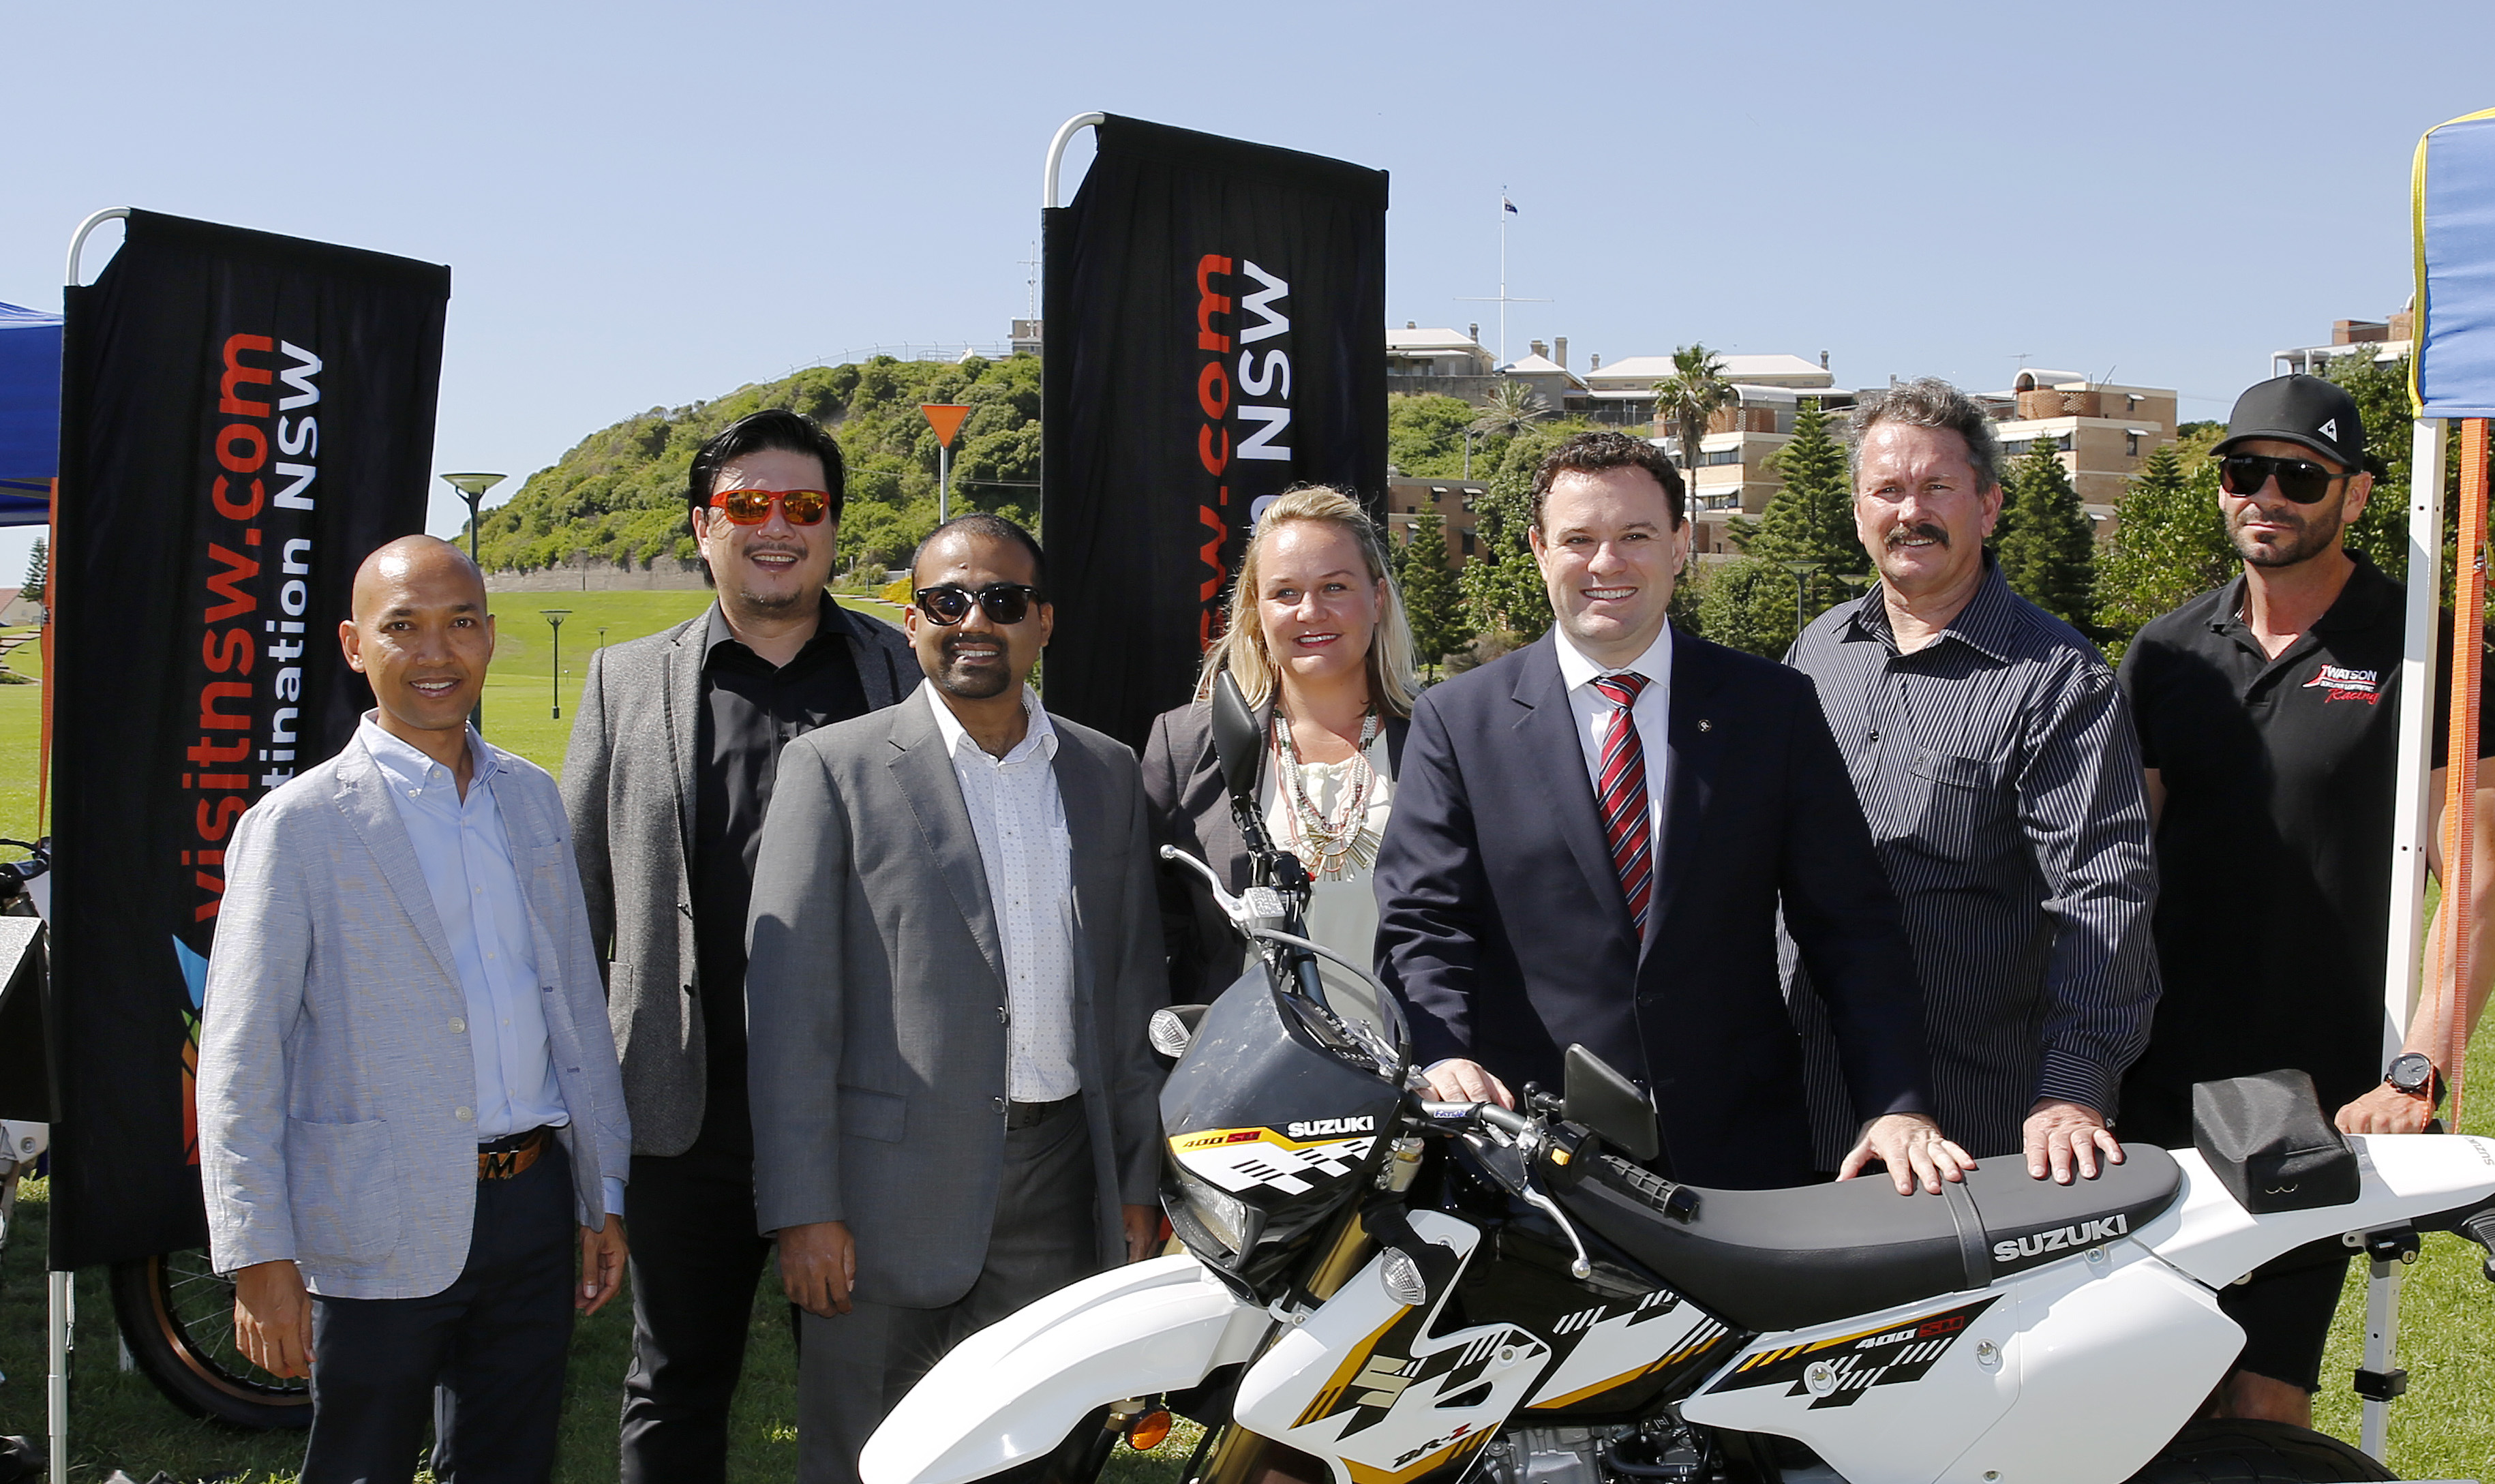 2016 Supermoto launch at Newcastle foreshore park.